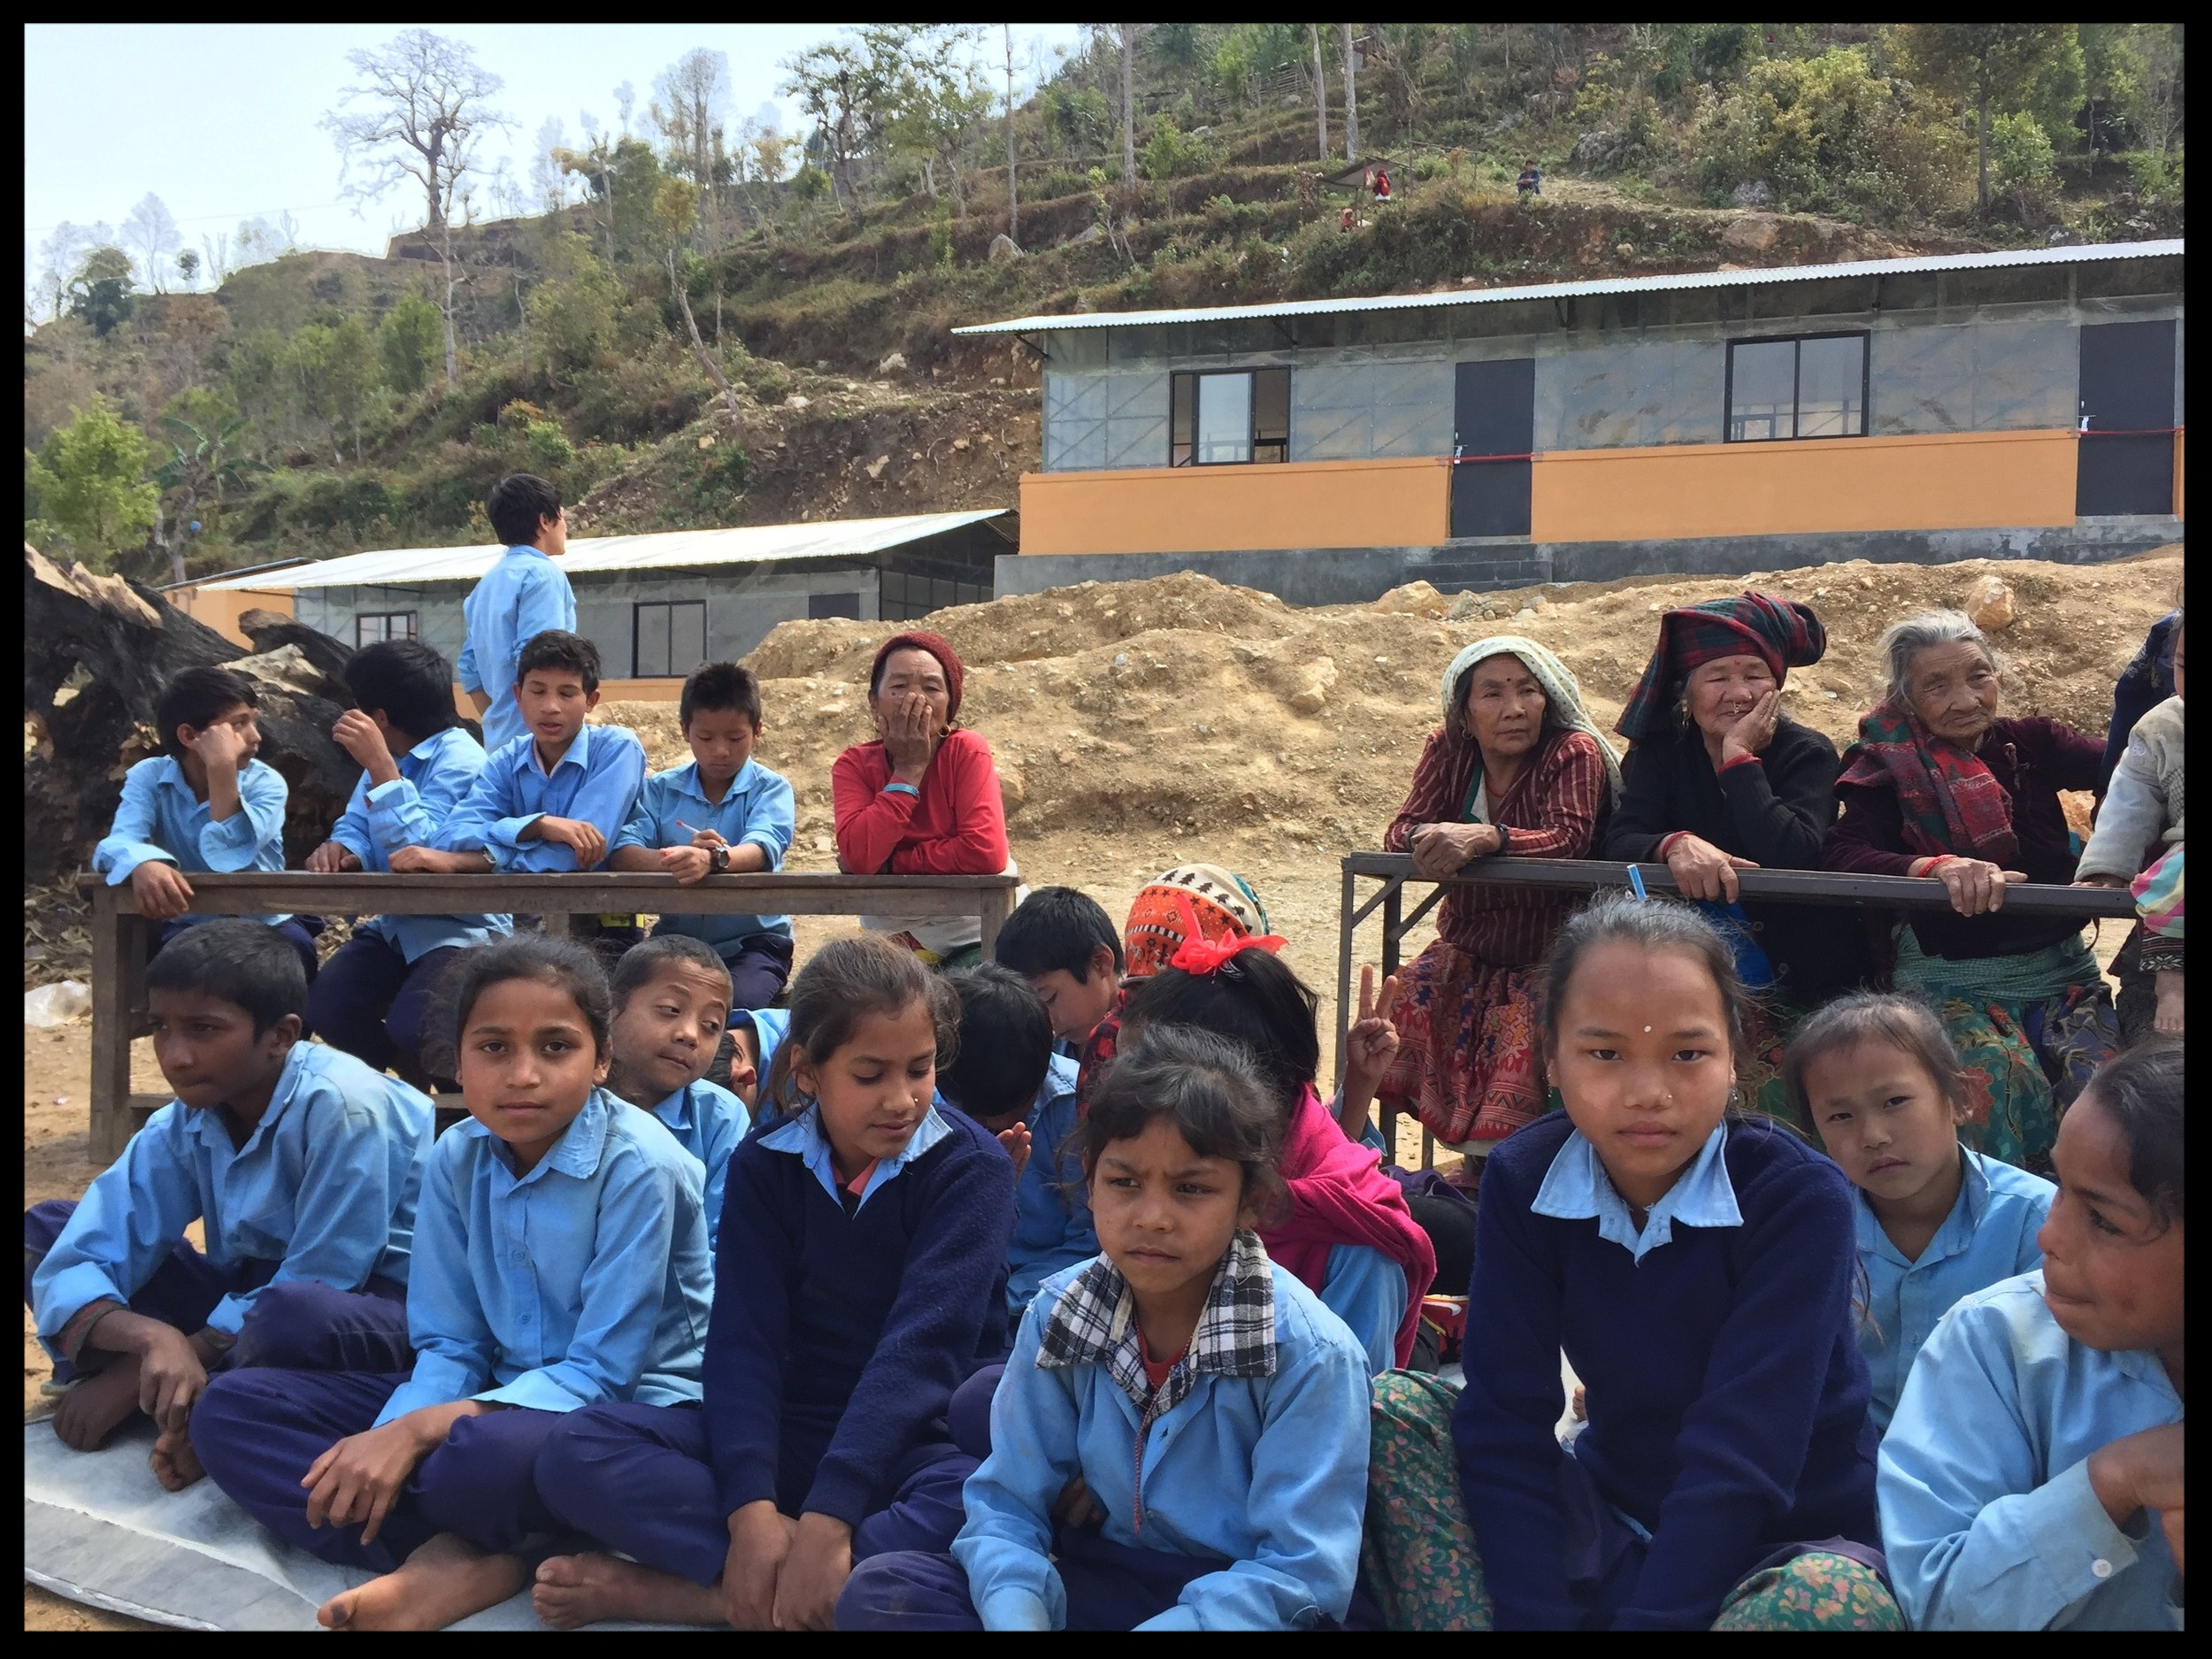 NEPAL - Since 2015 we have been building schools in Nepal utilizing volunteers from all over the world. We offer our local construction team any support they need. We paint buildings, move materials, teach English and play sports with the students. We are currently developing a soccer tournament in the village of the epicenter, Backchek.